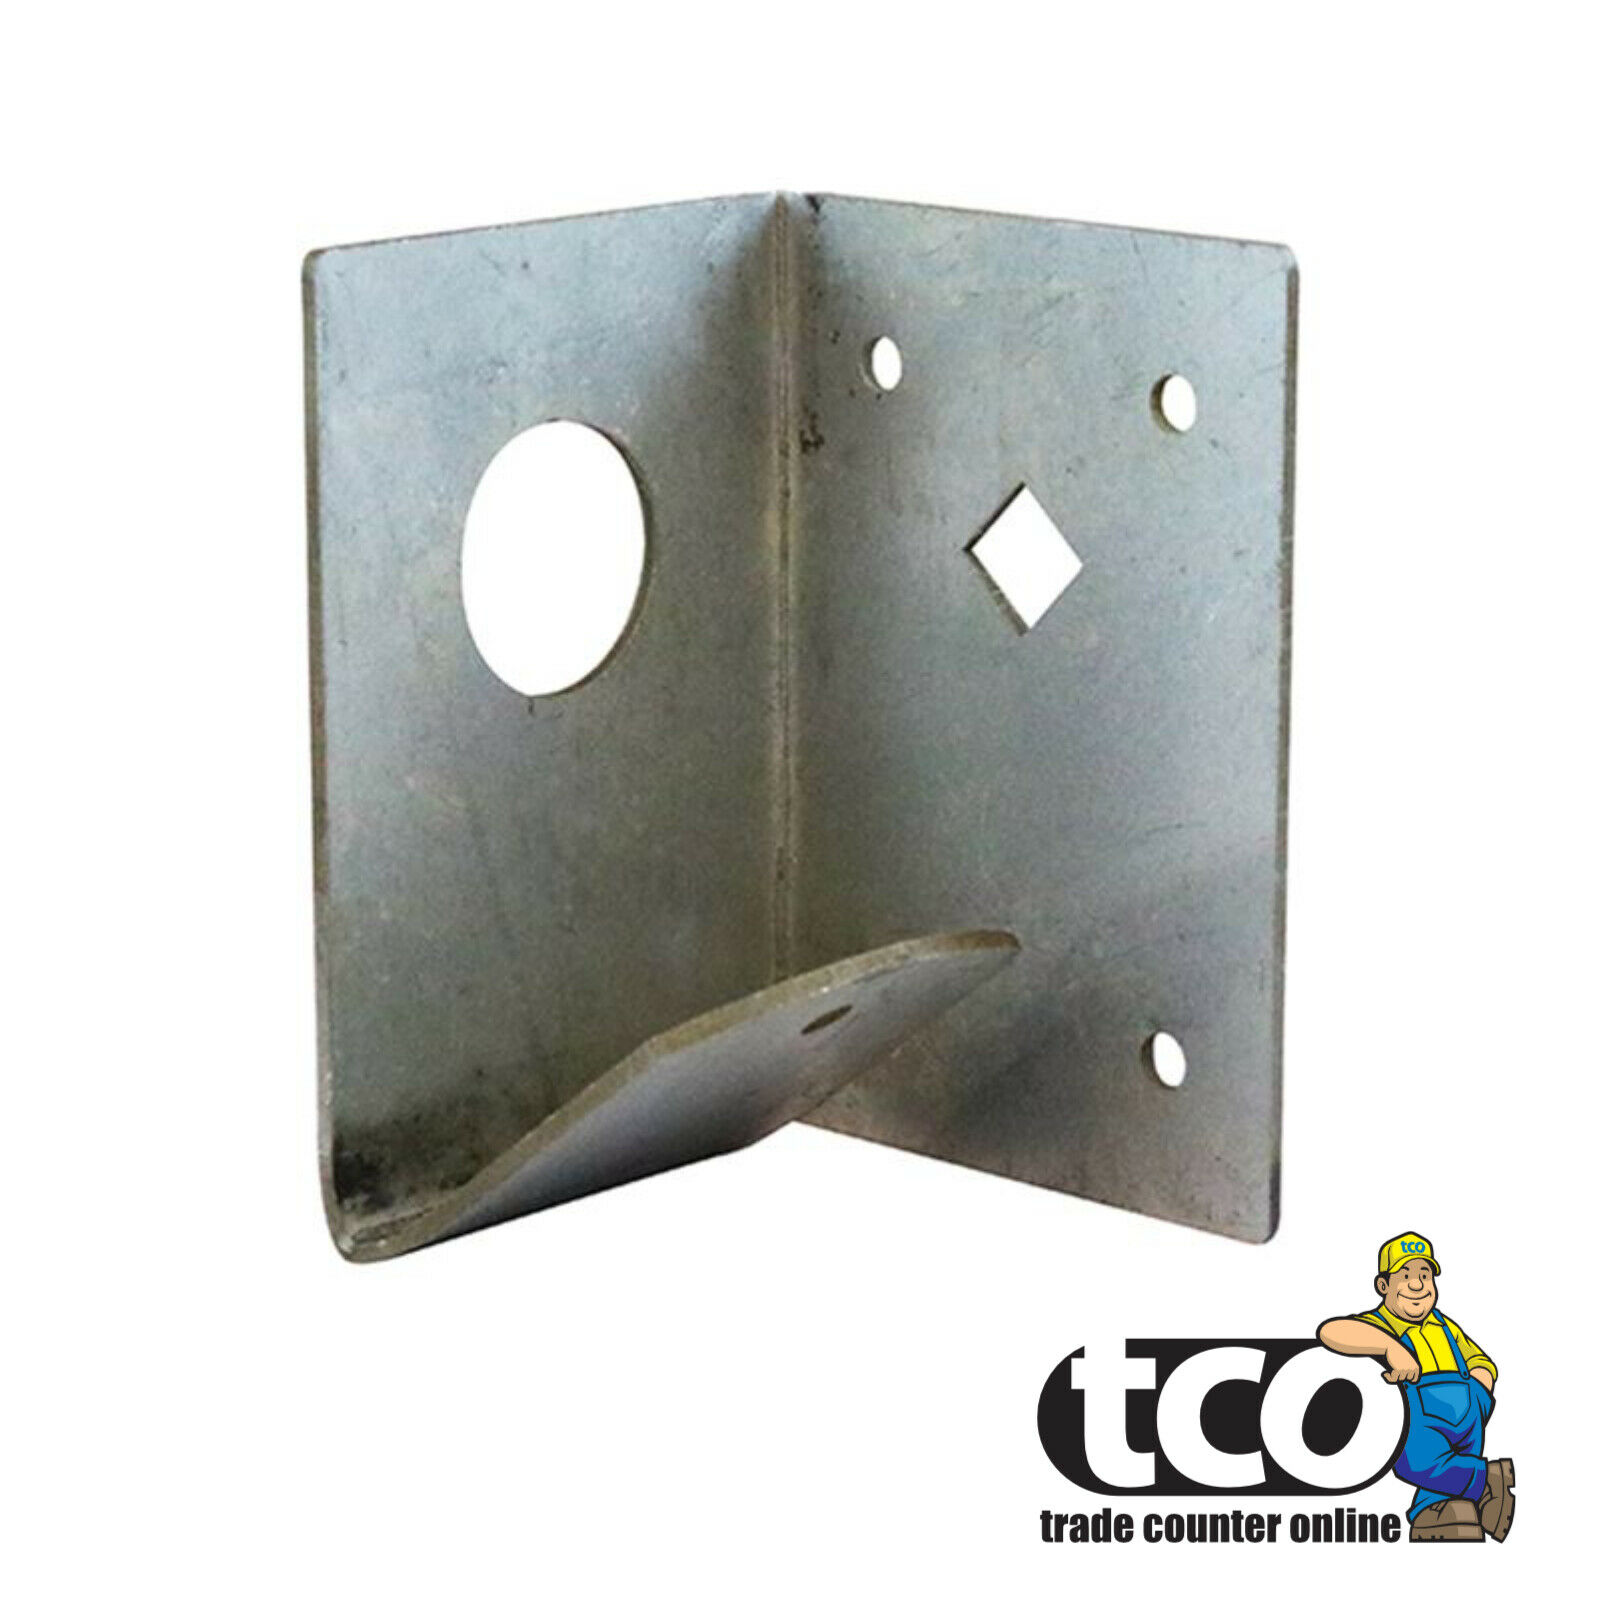 Taurus Arris Rail Mortice Support Brackets Galvanised Gate and Fence Hardware